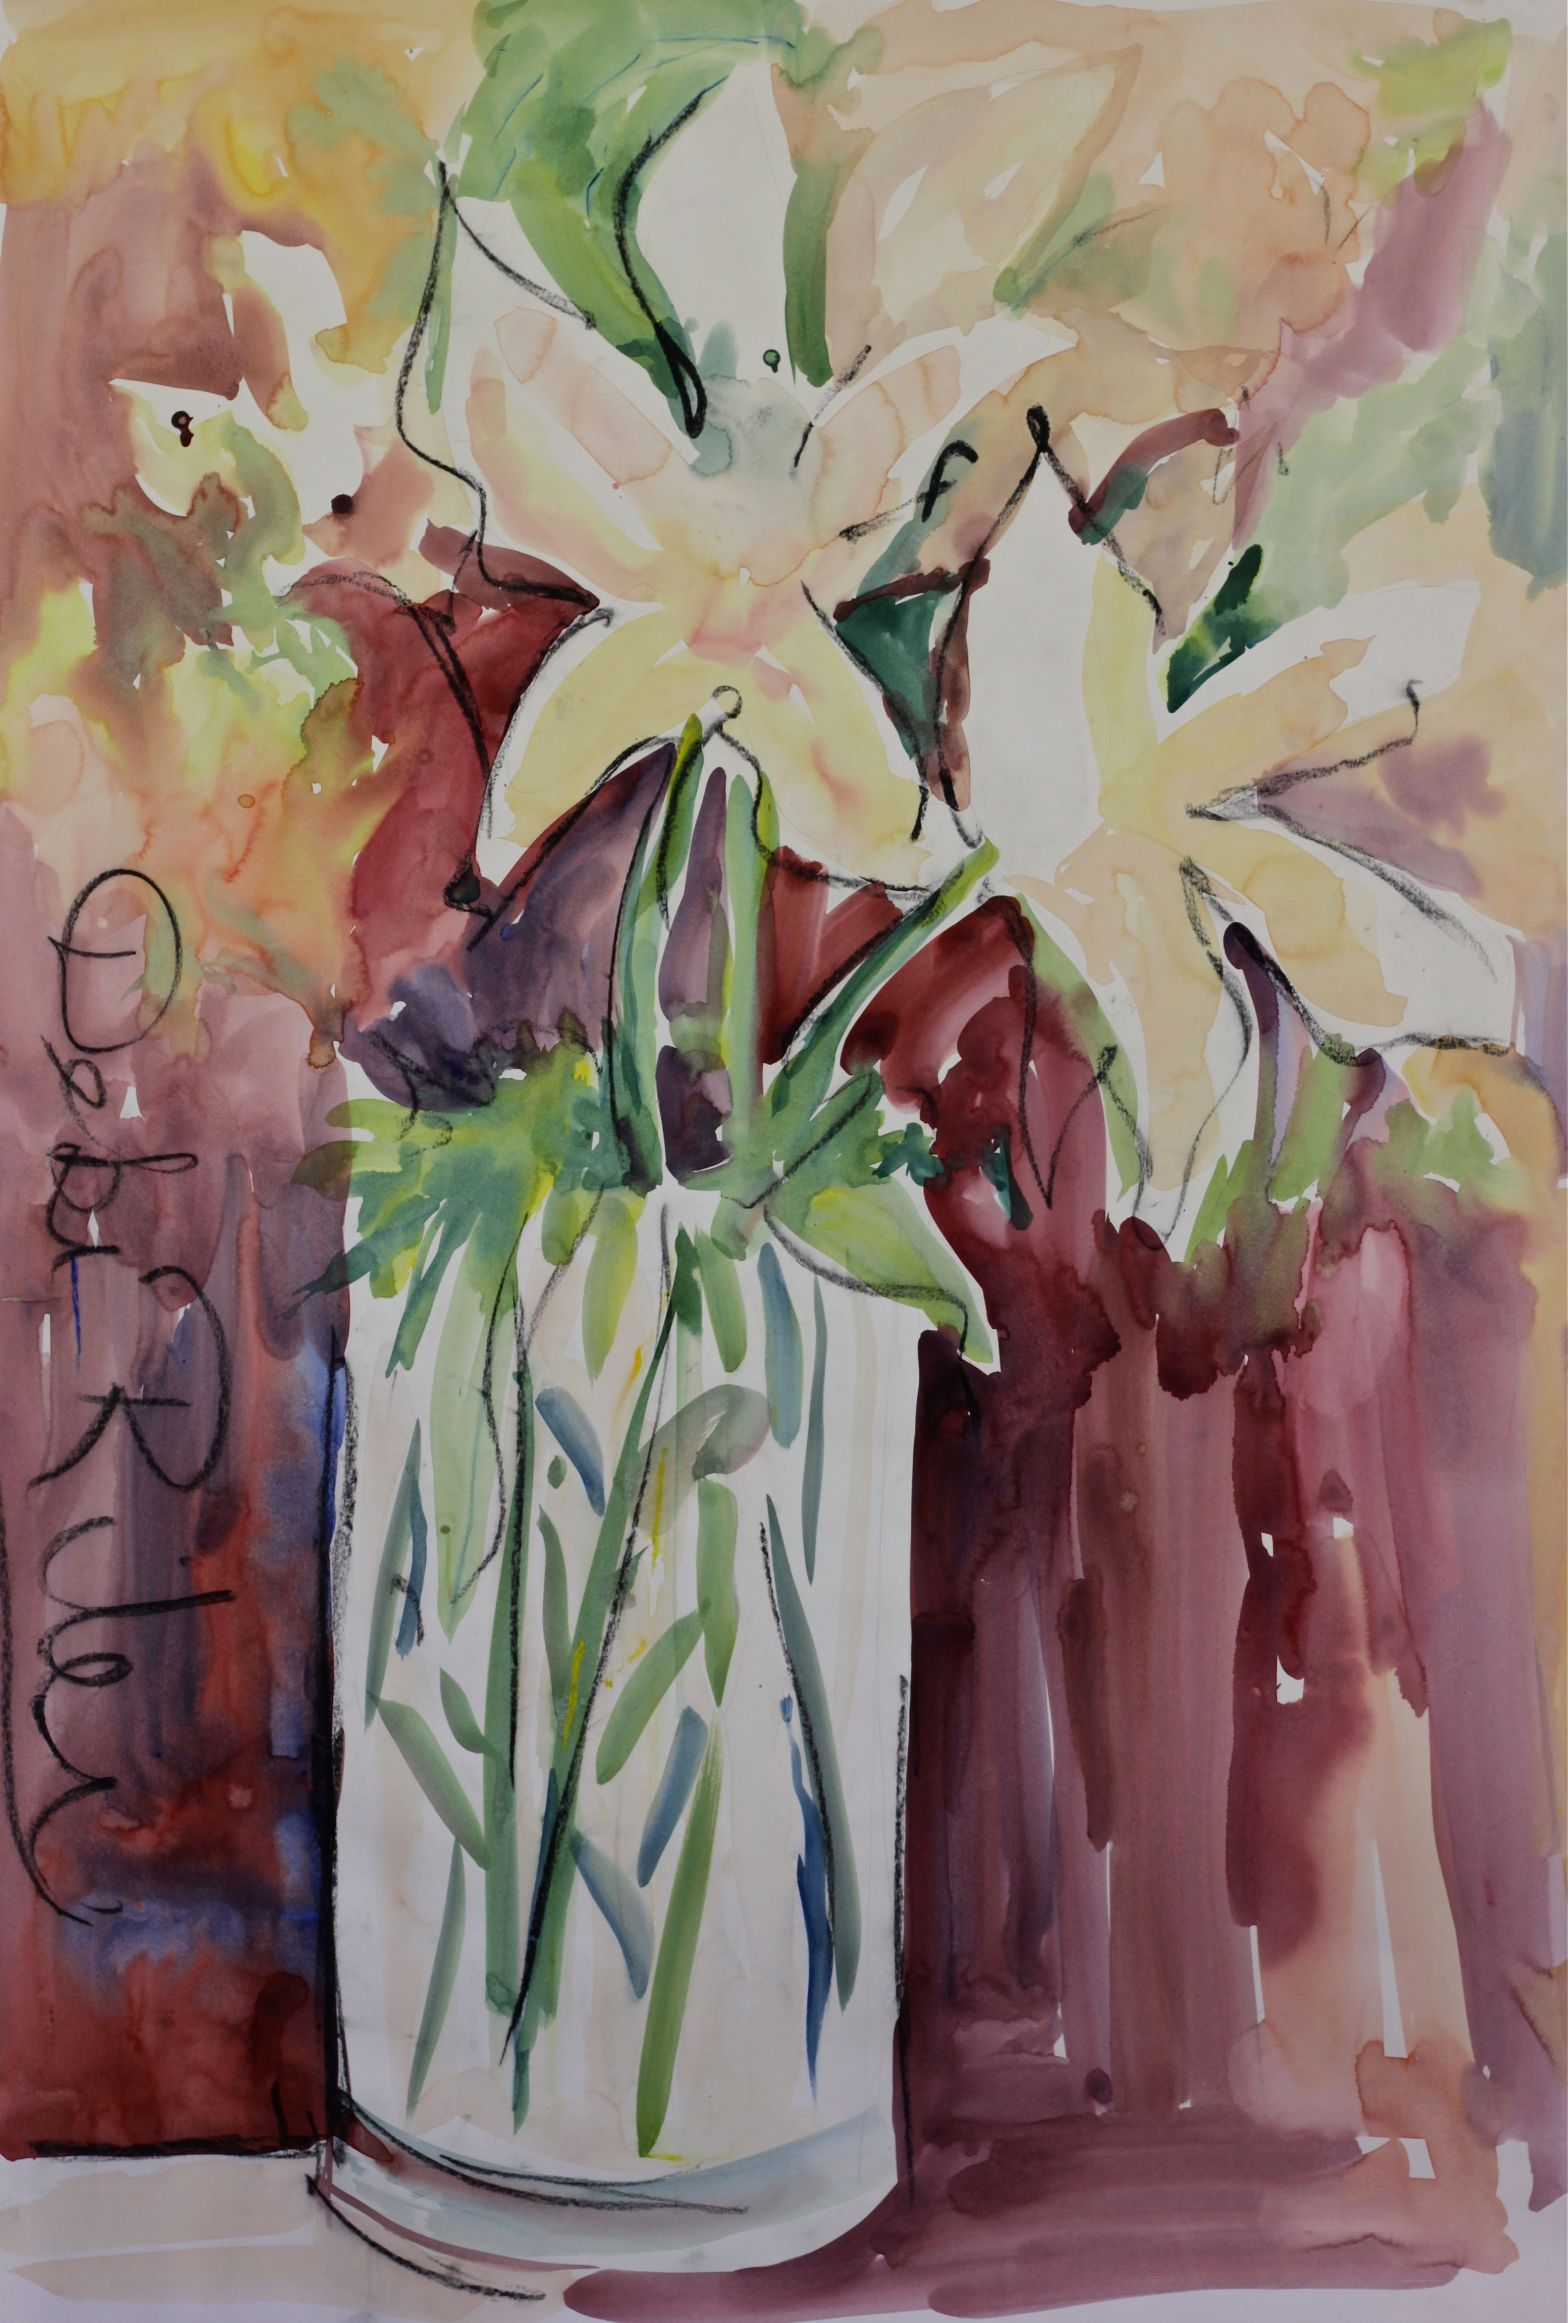 watercolor lilies, abstract flowers, Watercolours Wild Floral fast and loose painting debiriley.com